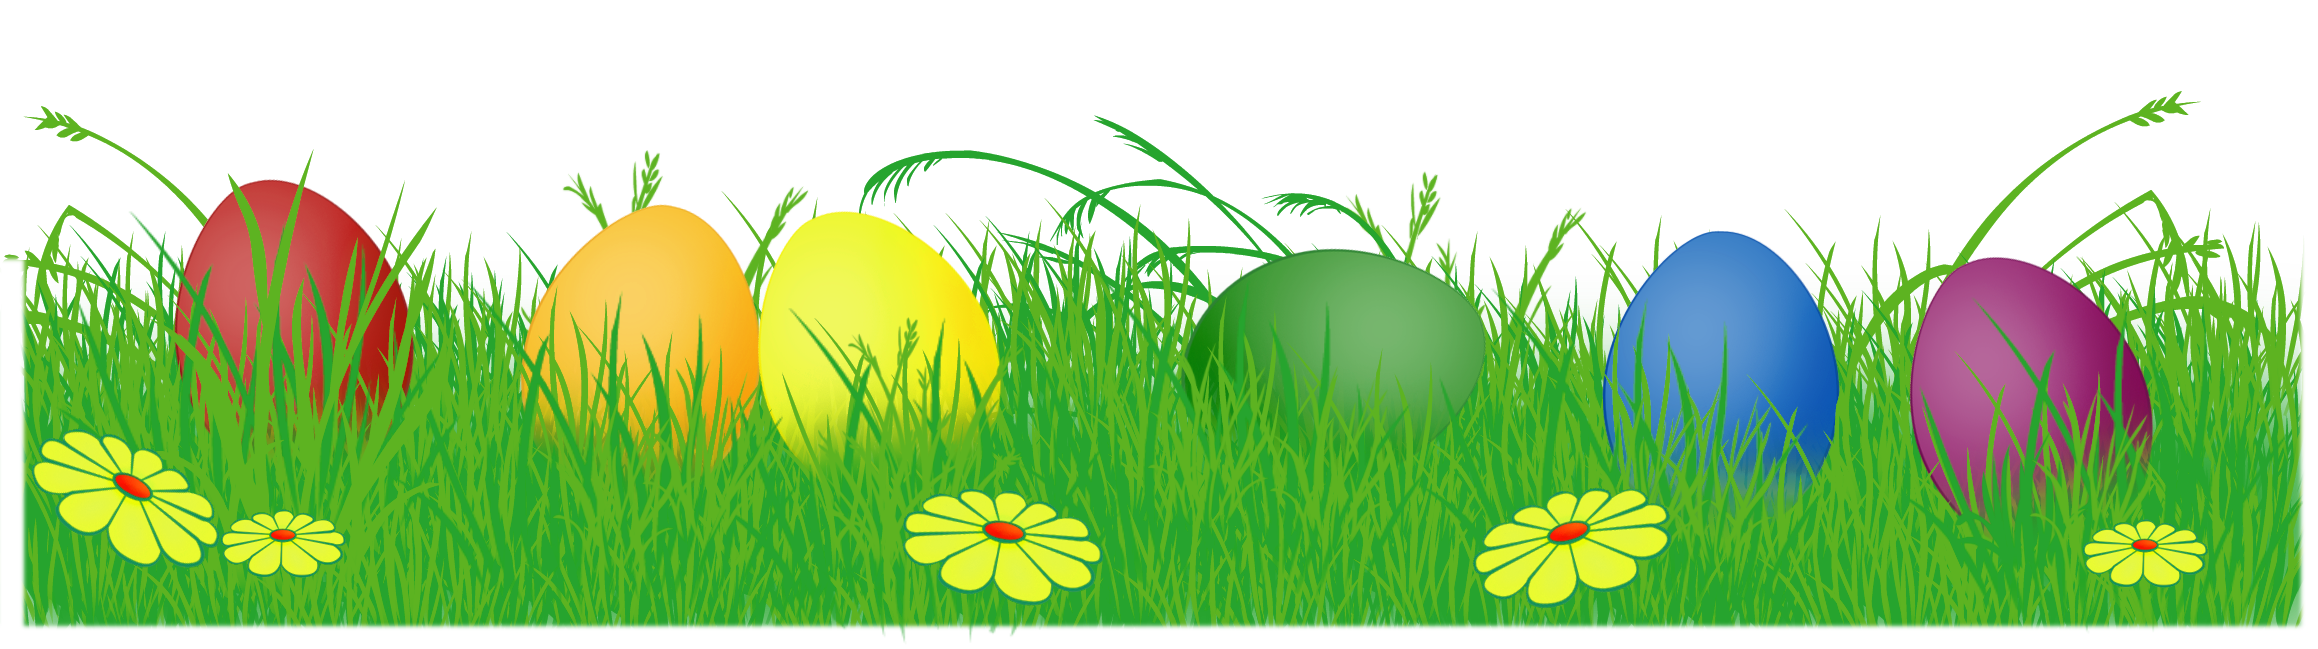 Easter Eggs In Grass PNG Image